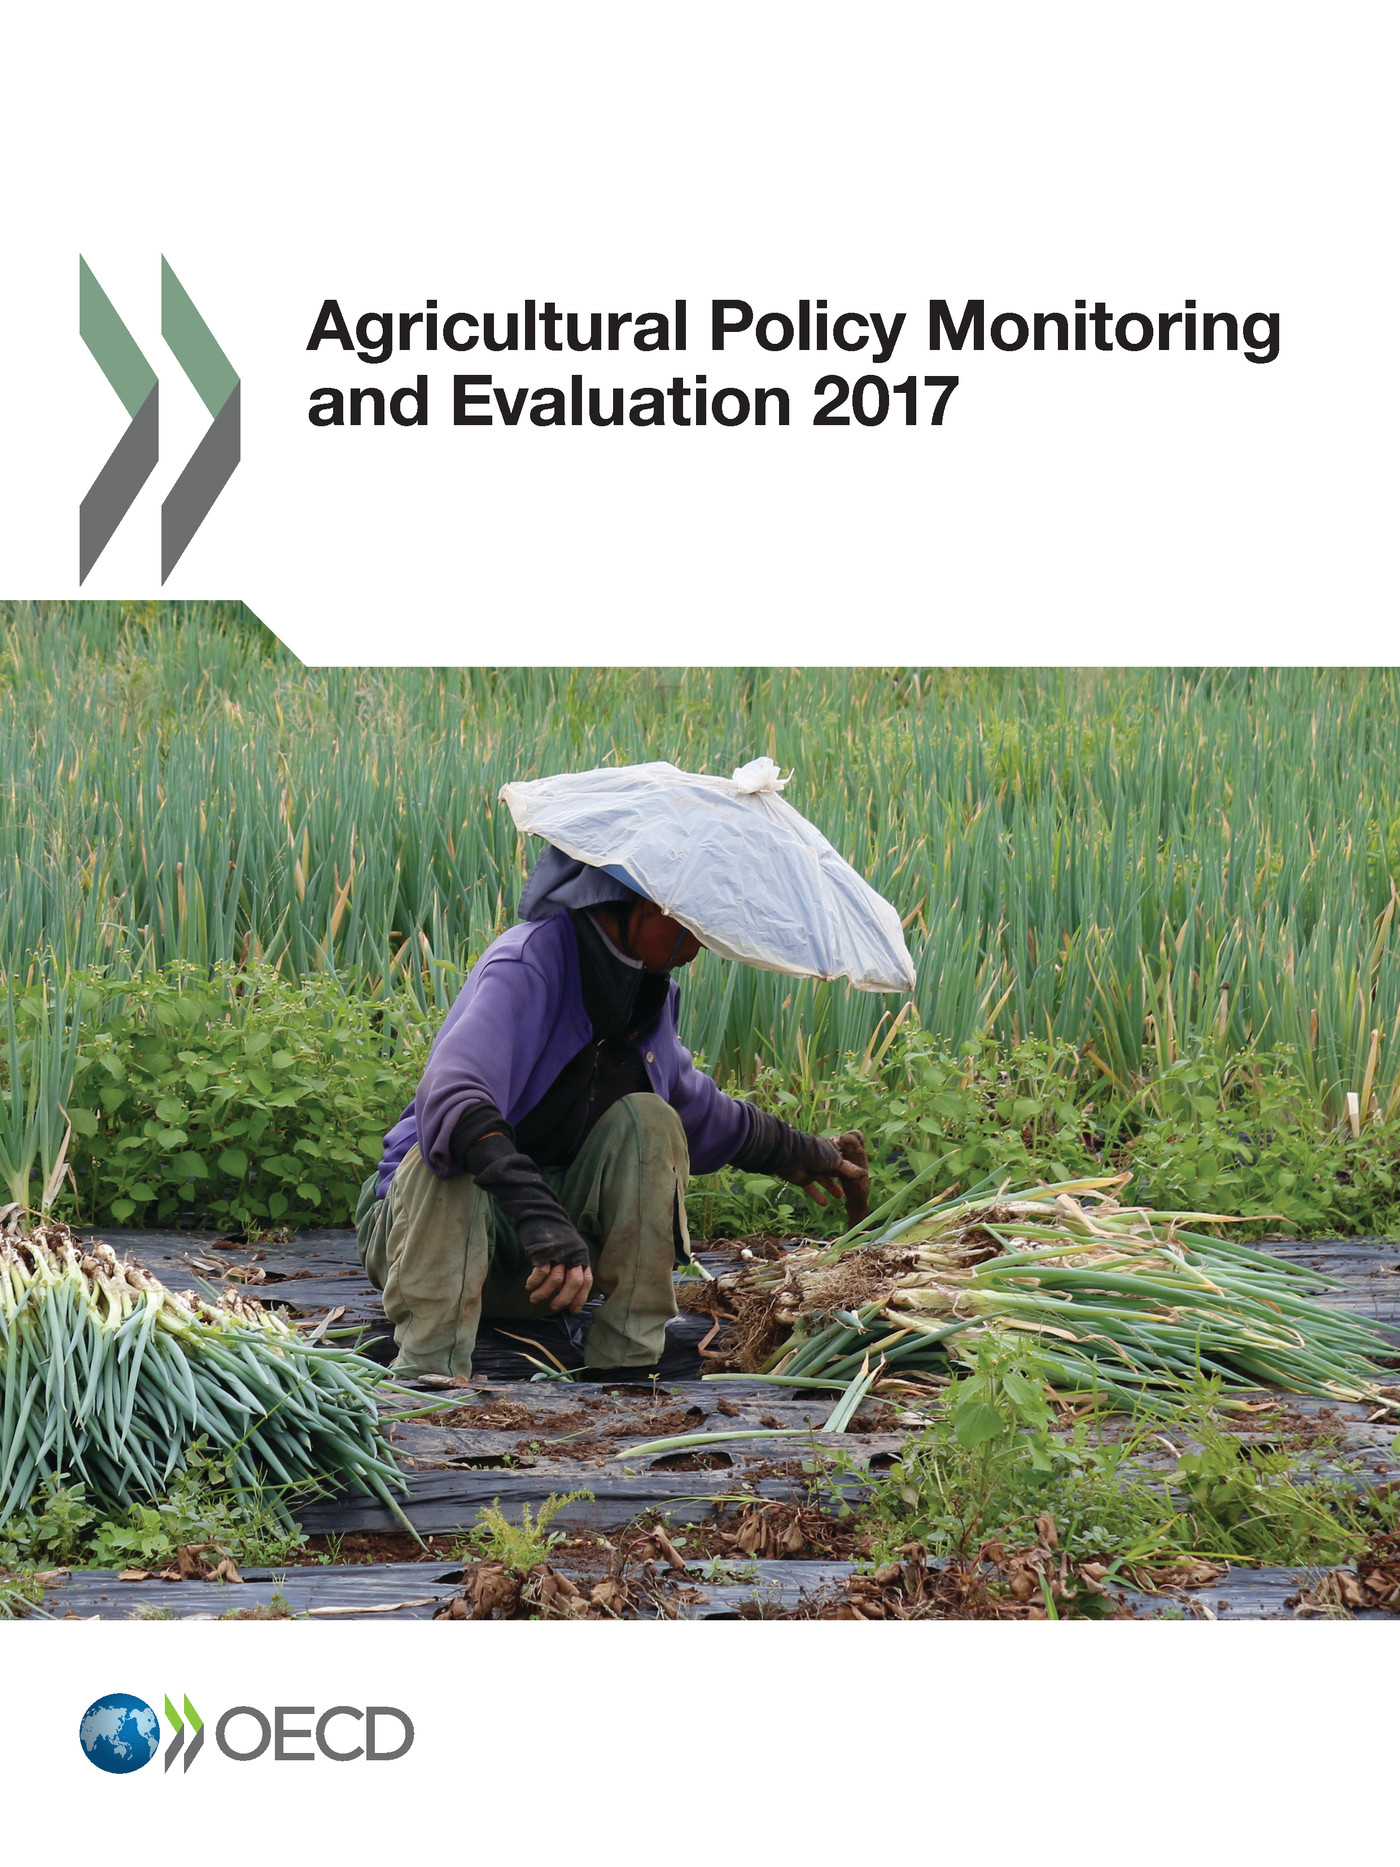 Agricultural Policy Monitoring and Evaluation 2017 De  Collectif - OCDE / OECD